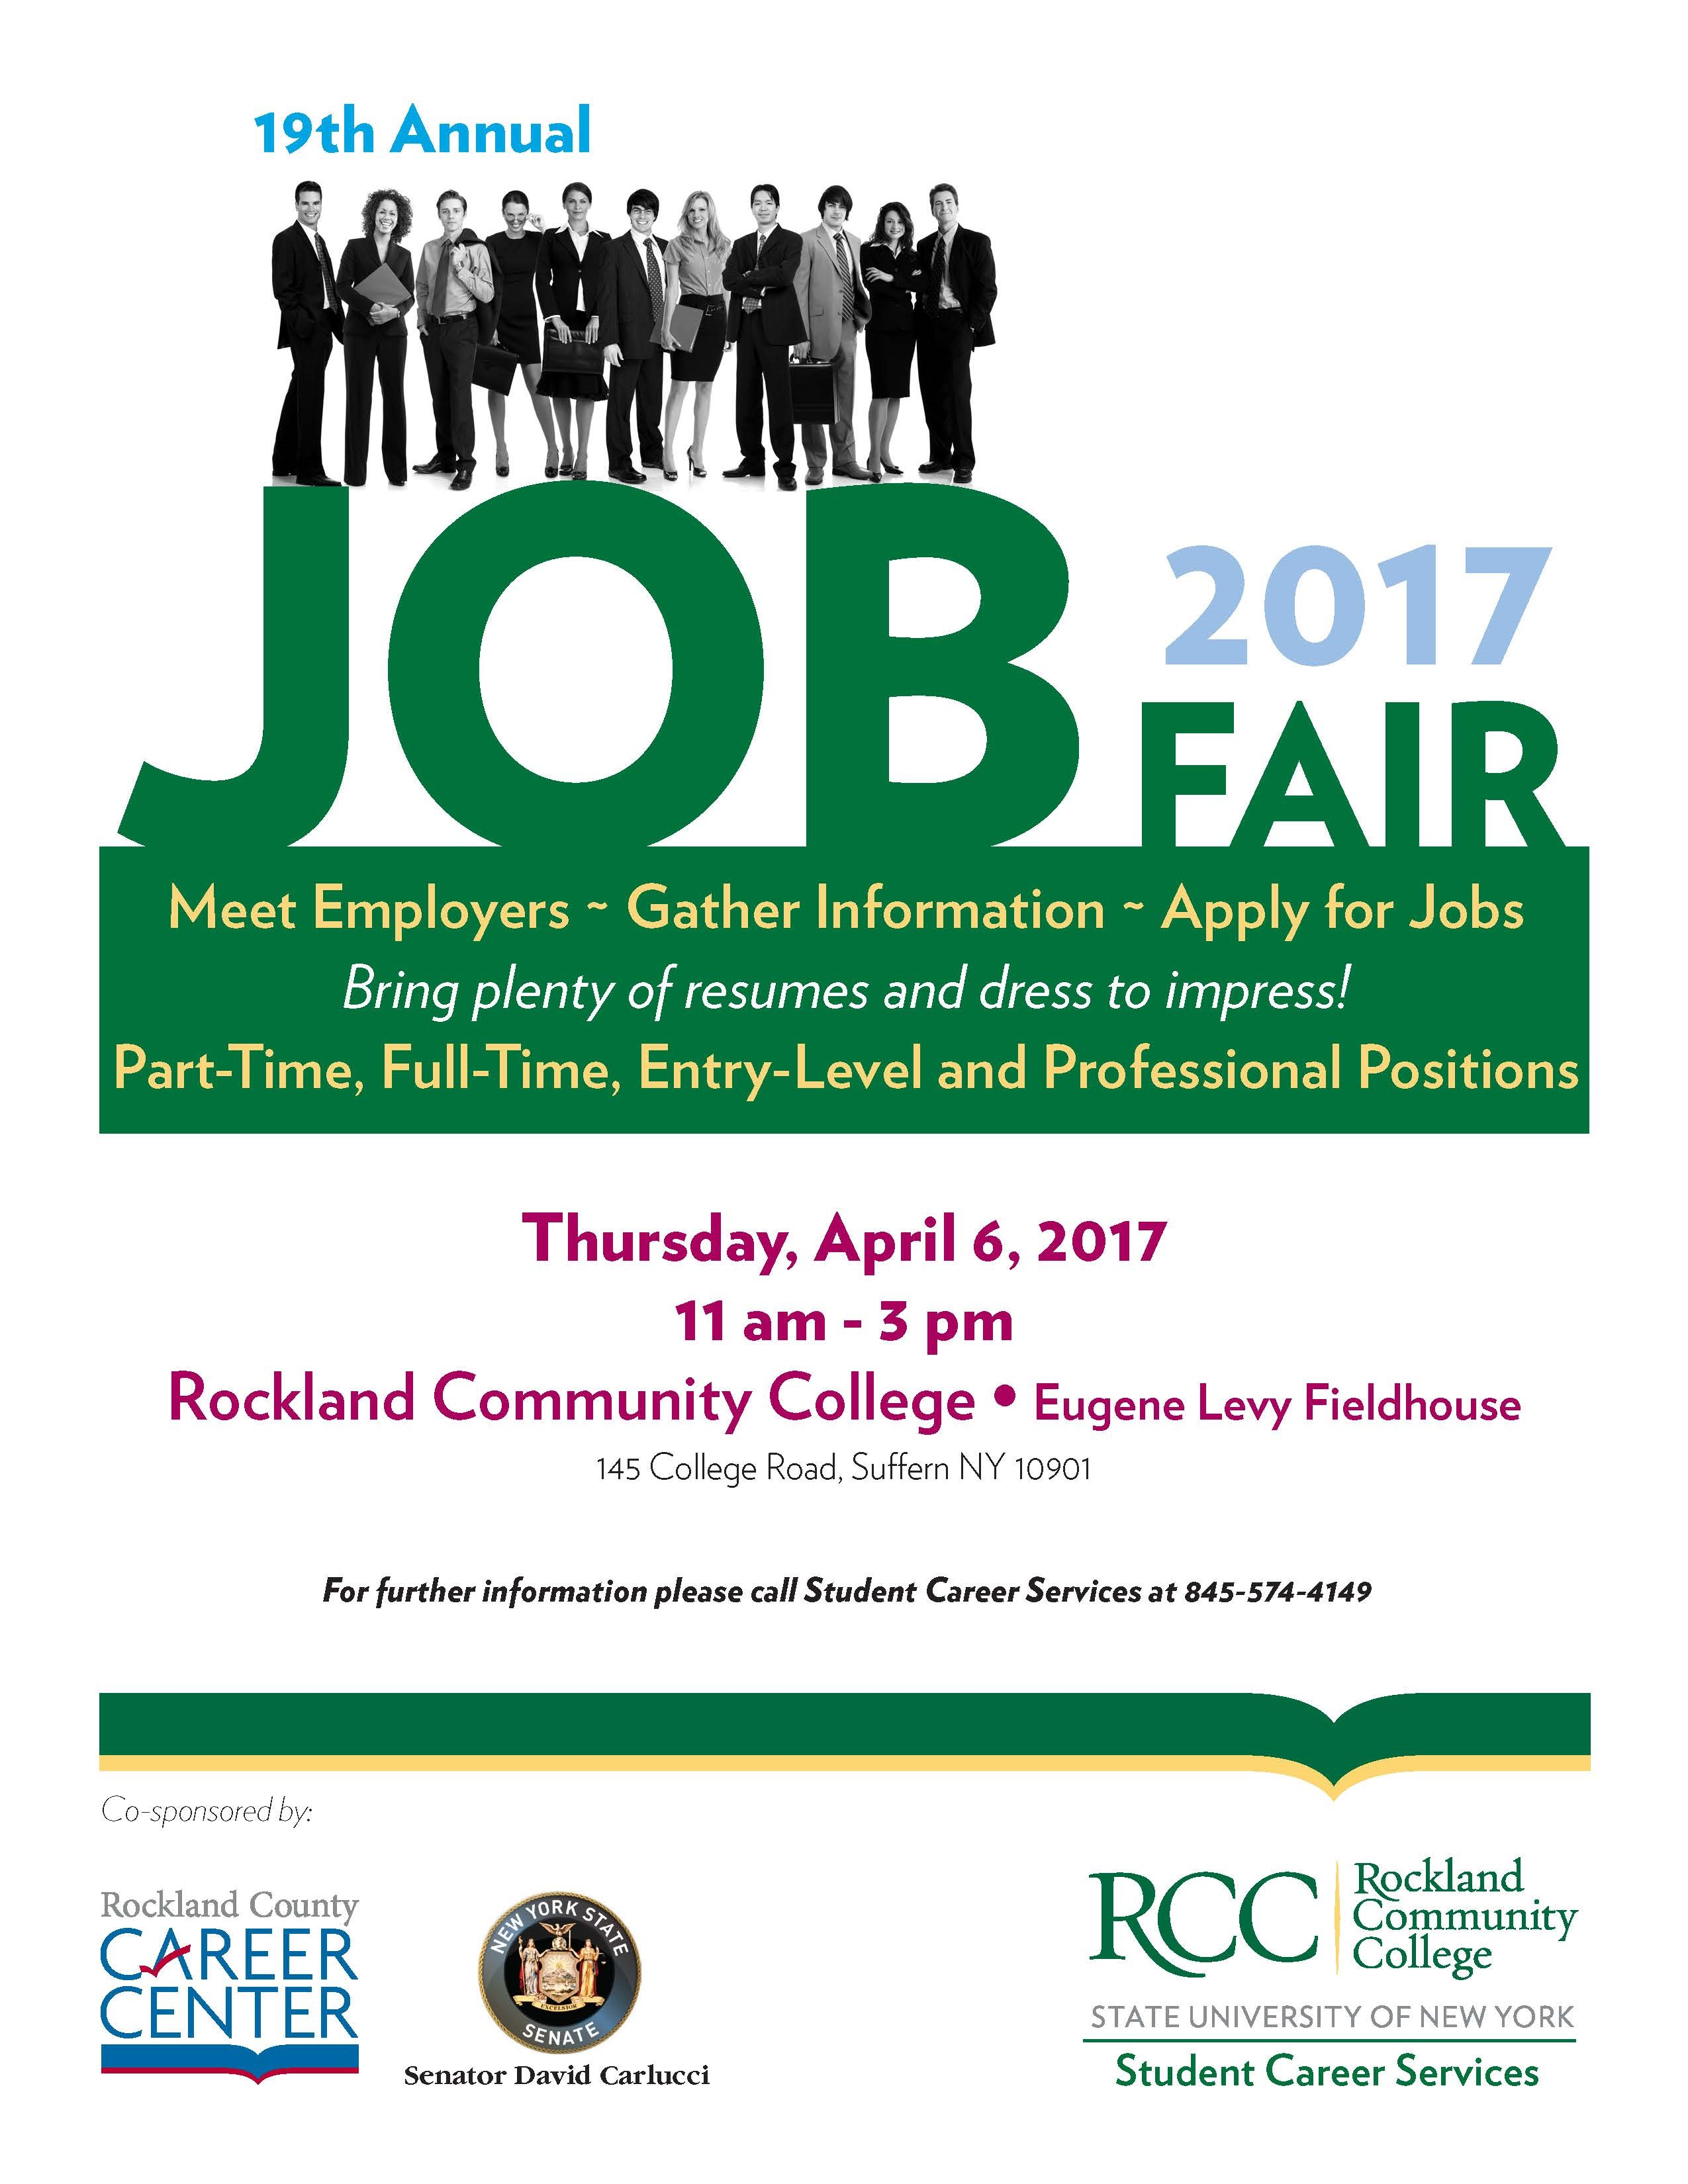 rockland community college to host job fair nanuet ny patch a wide range of industries will be represented offering positions from entry level to professional job seekers are encouraged to take full advantage of